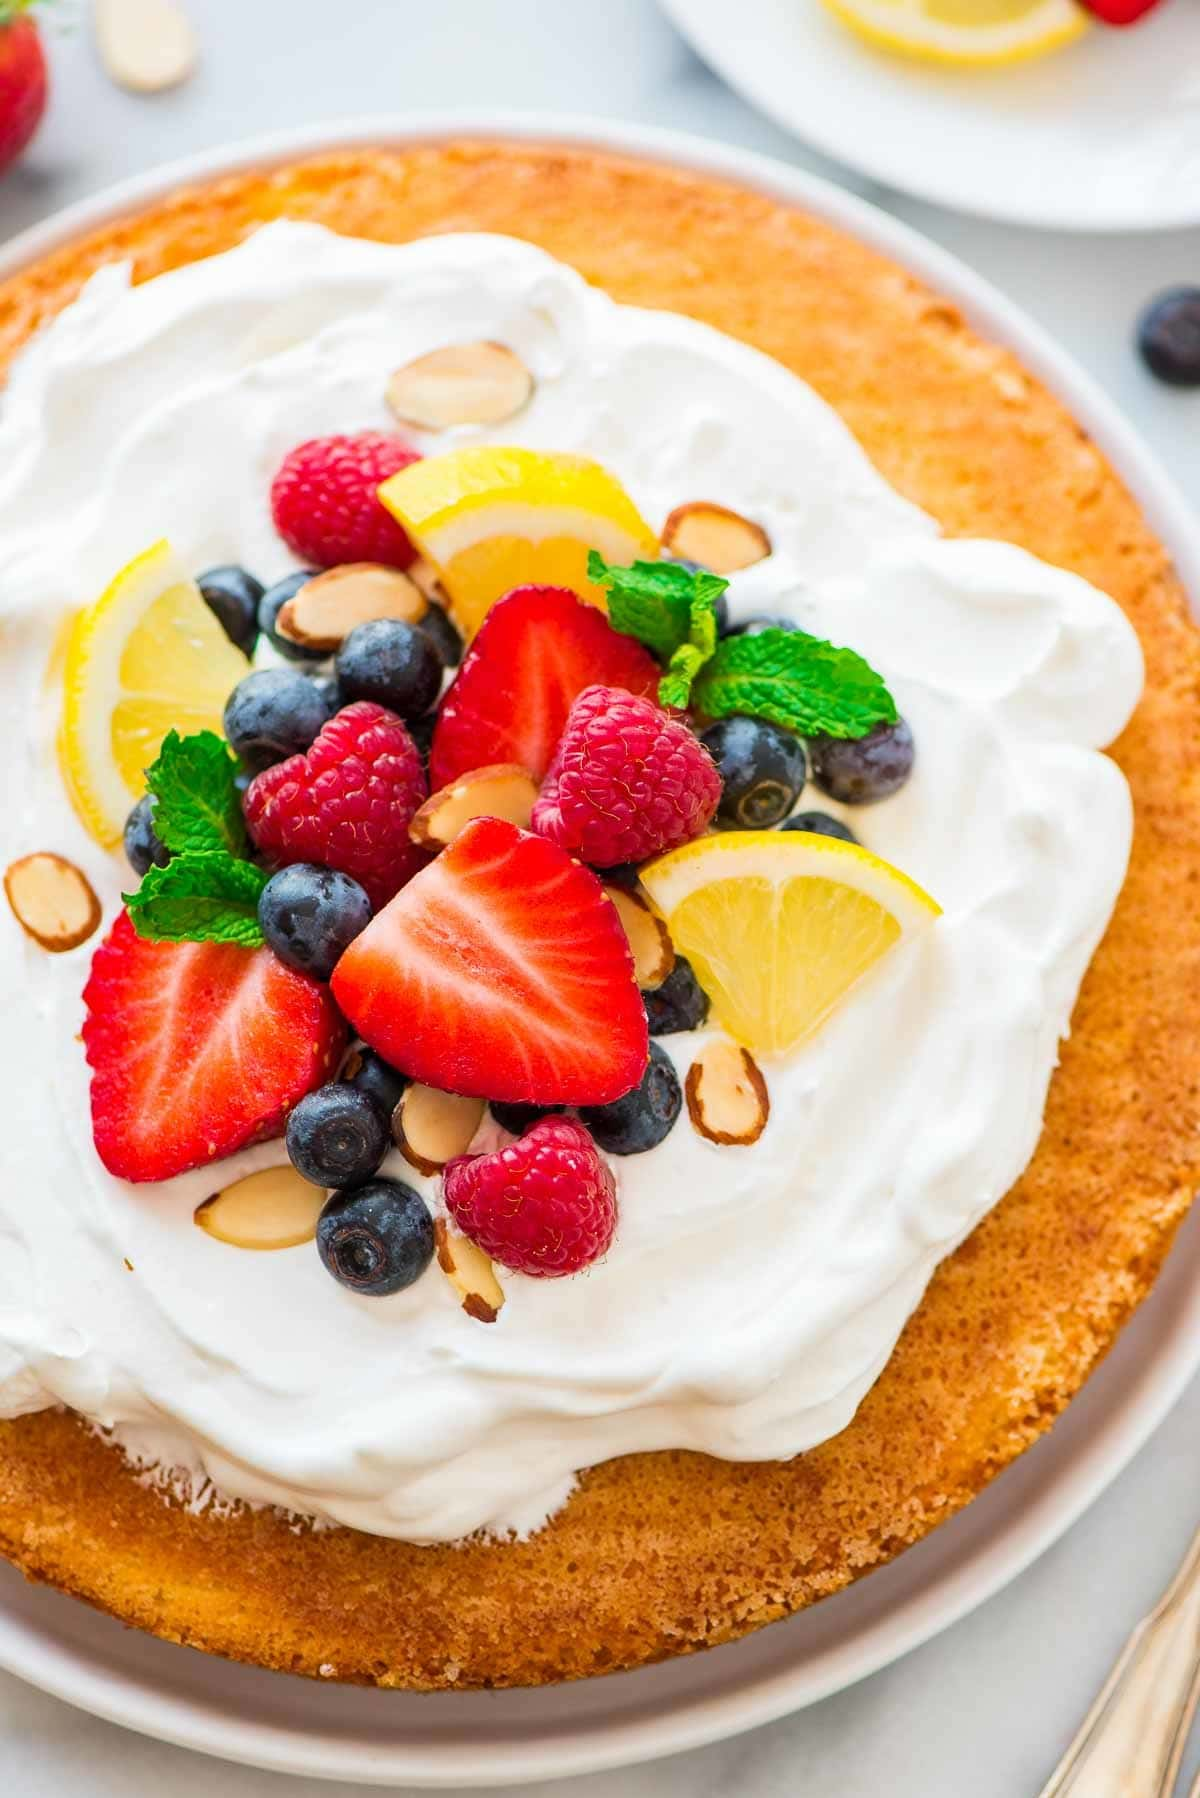 Easy Flourless Lemon Almond Flour Cake. Light, fluffy, and gluten free! Easy to make, freezer friendly, and perfect for any holiday or party. Recipe at wellplated.com | @wellplated